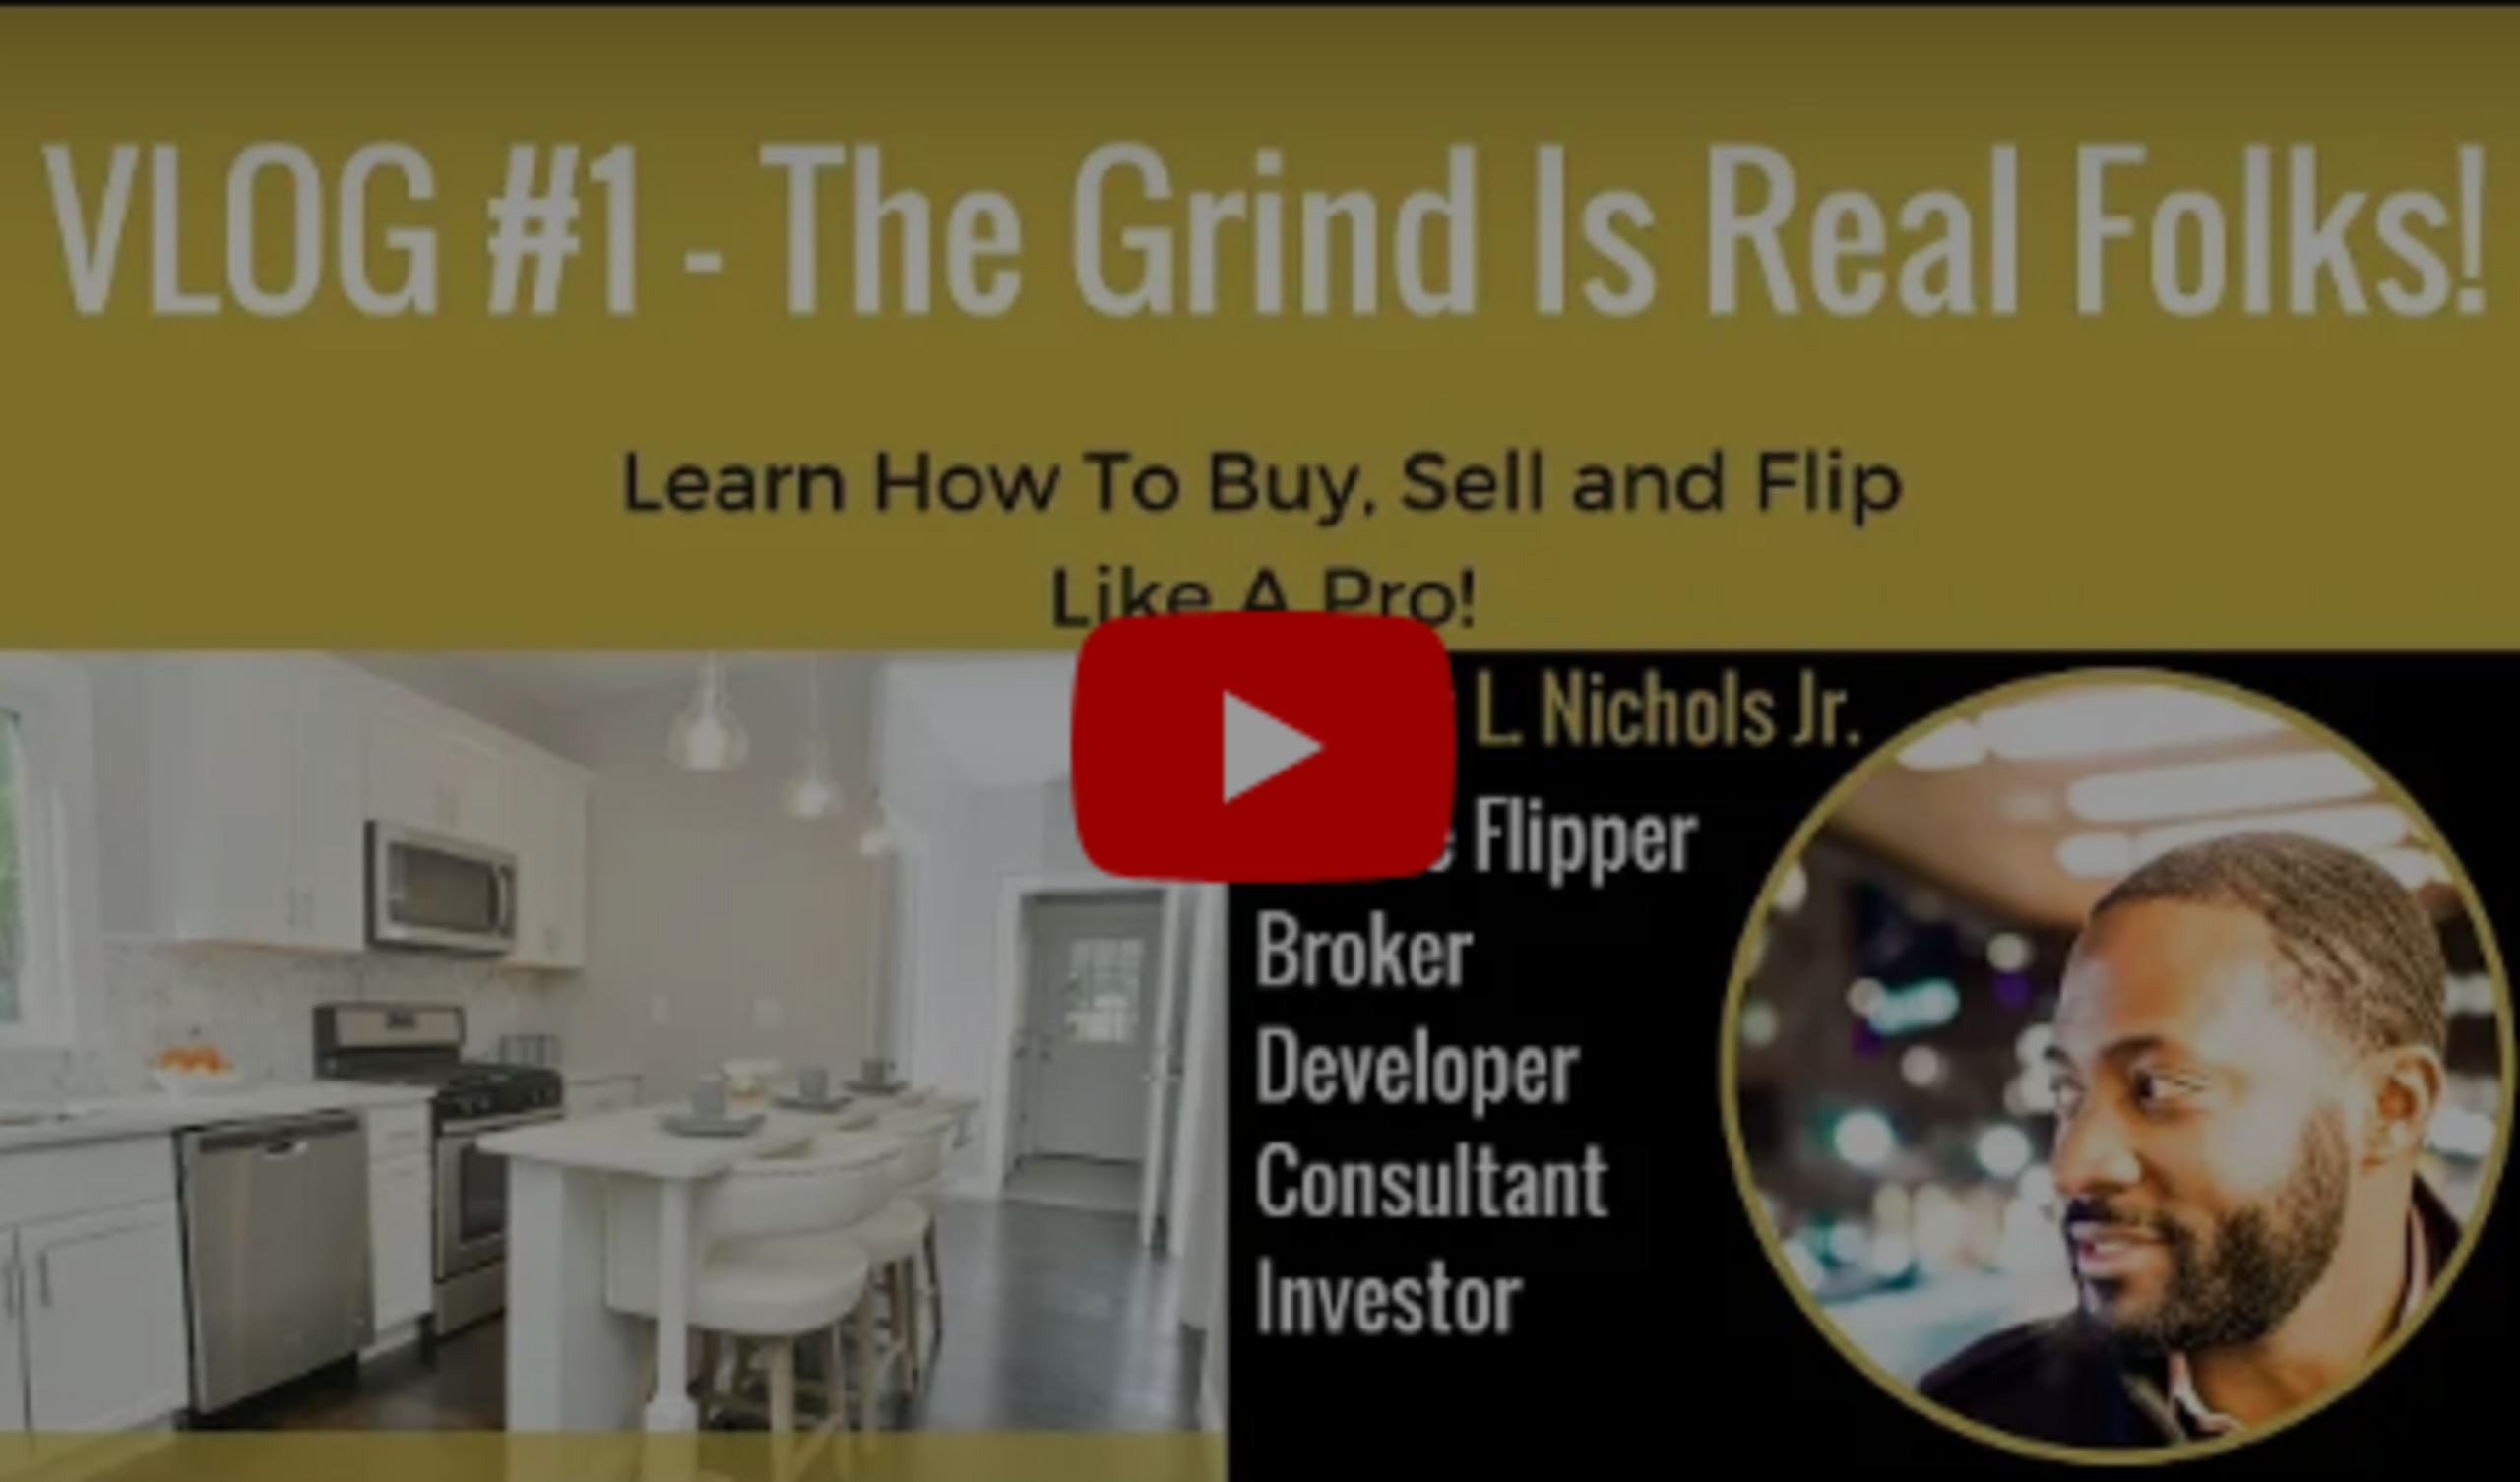 The Daily Grind of a Real Estate Entrepreneur